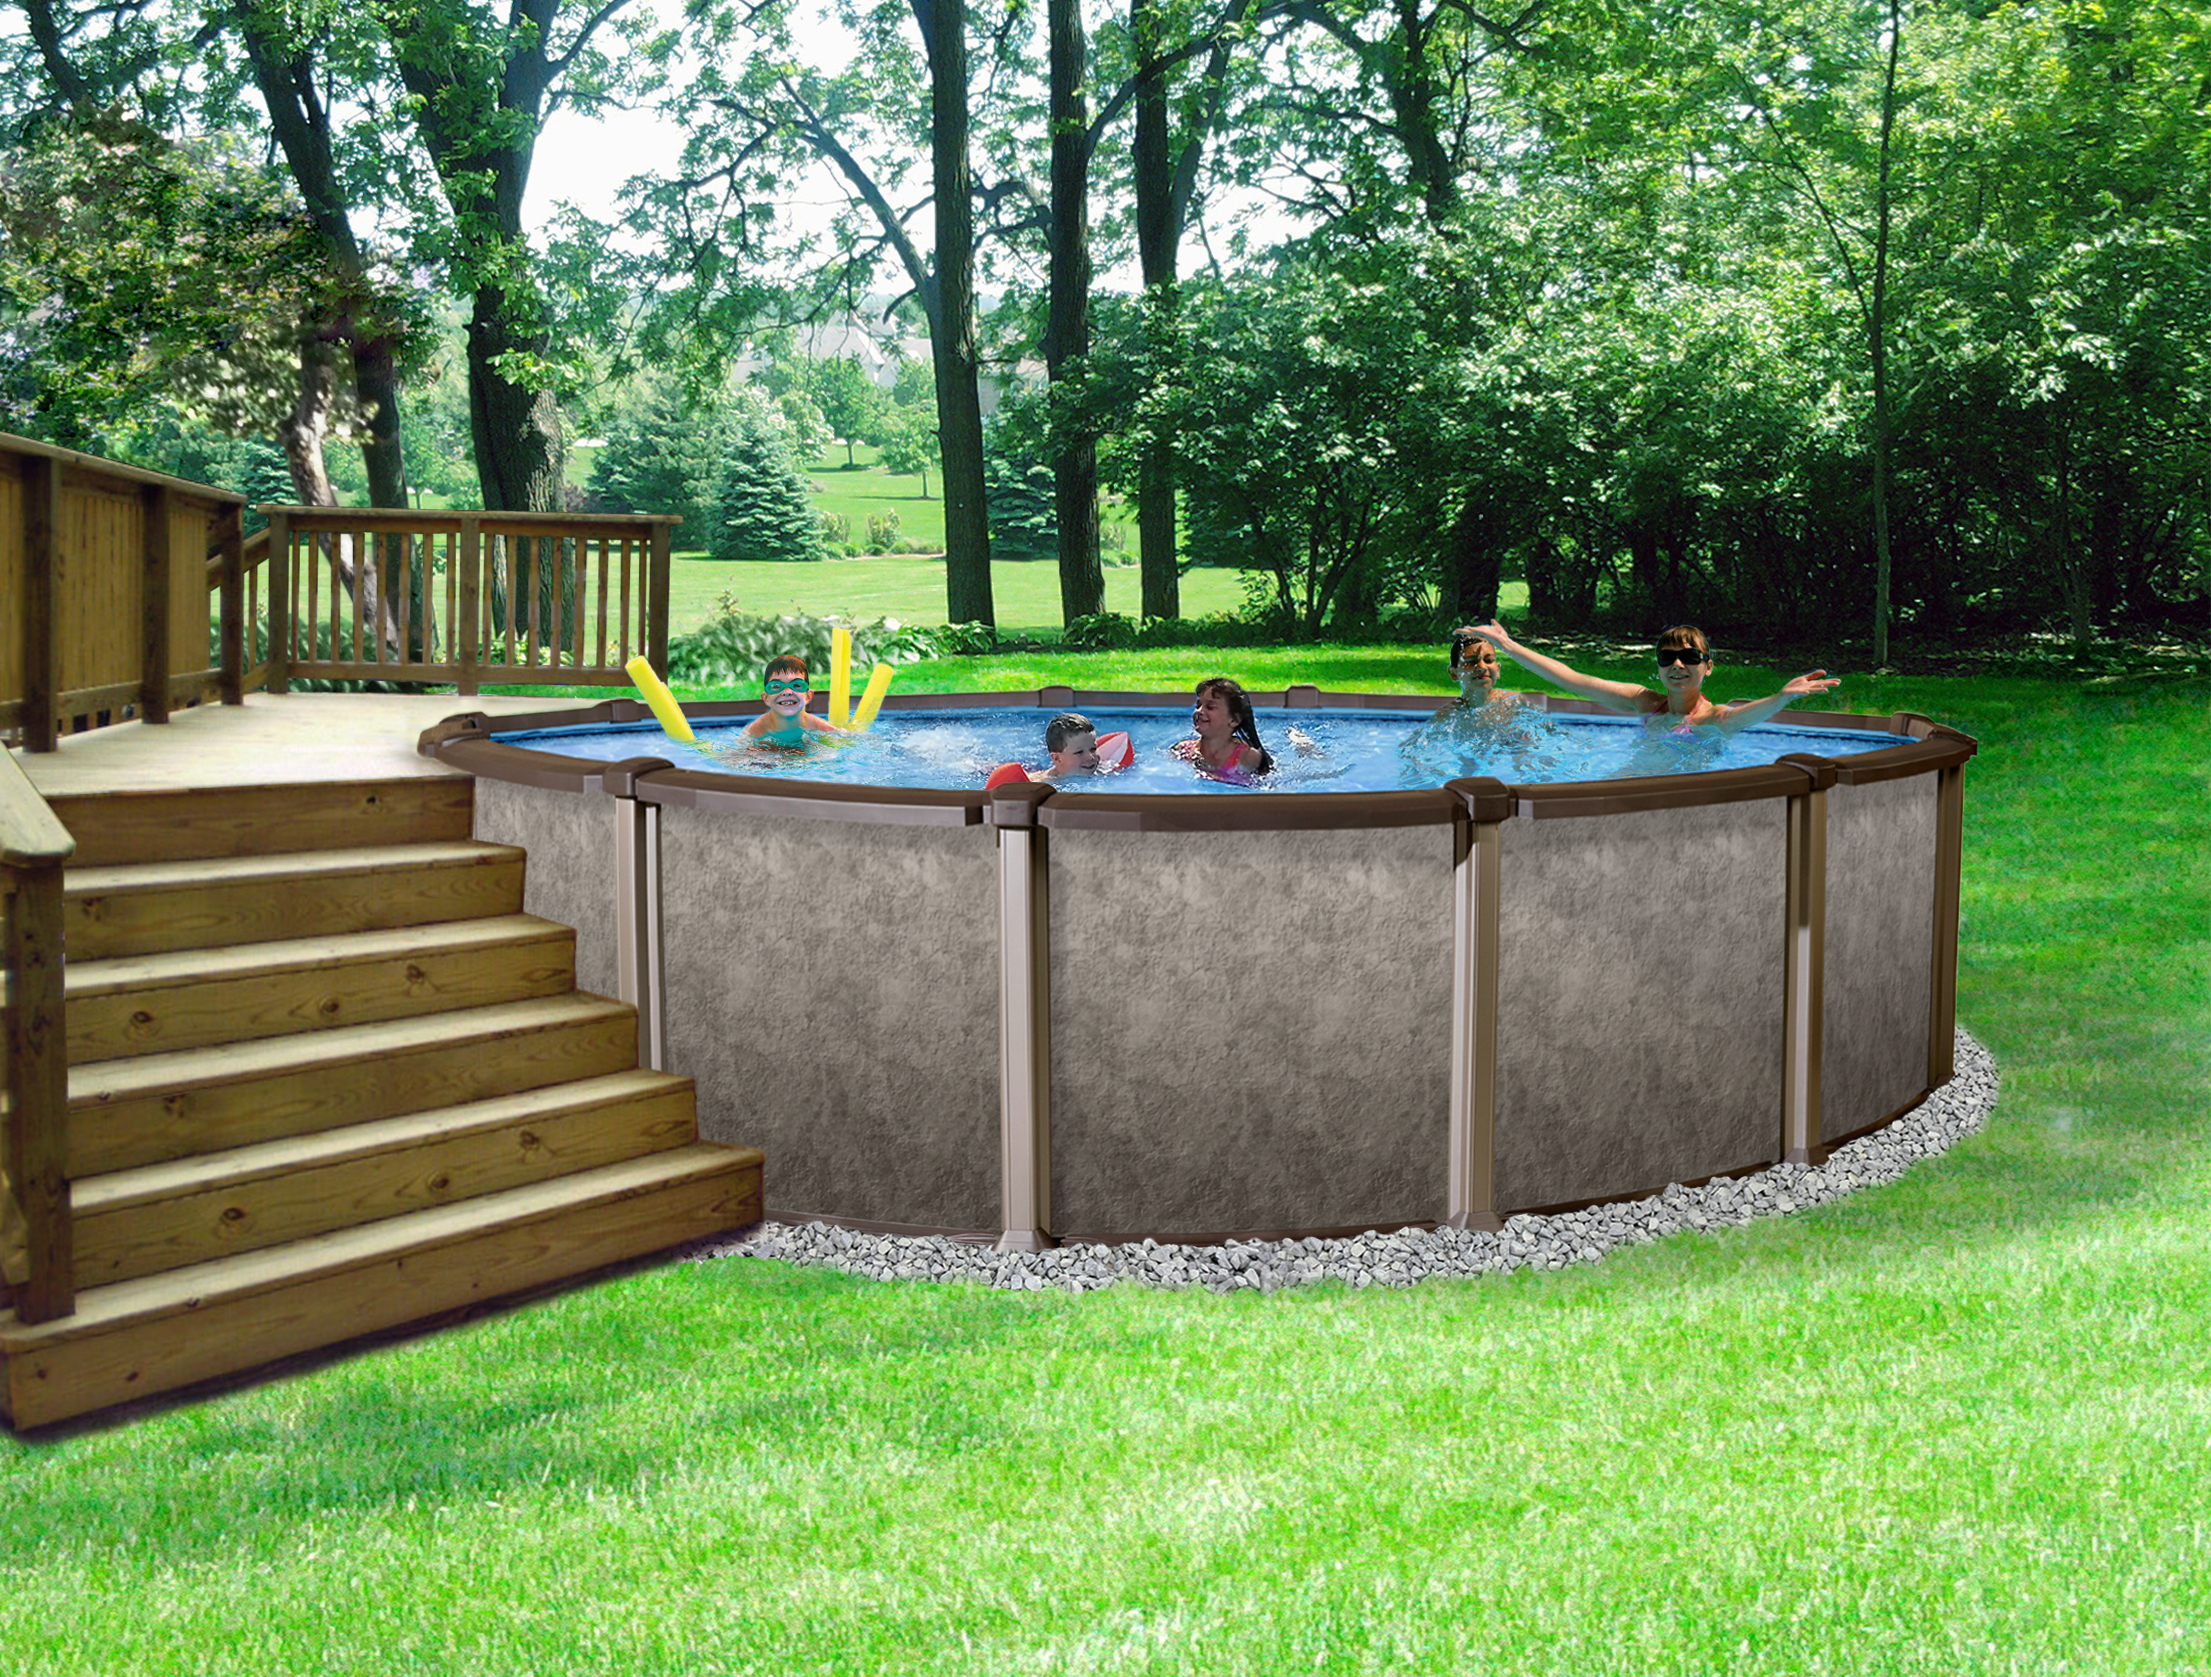 Riviera metal wall above ground swimming pool 27 39 round and 54 39 39 deep ebay for Round swimming pools above ground